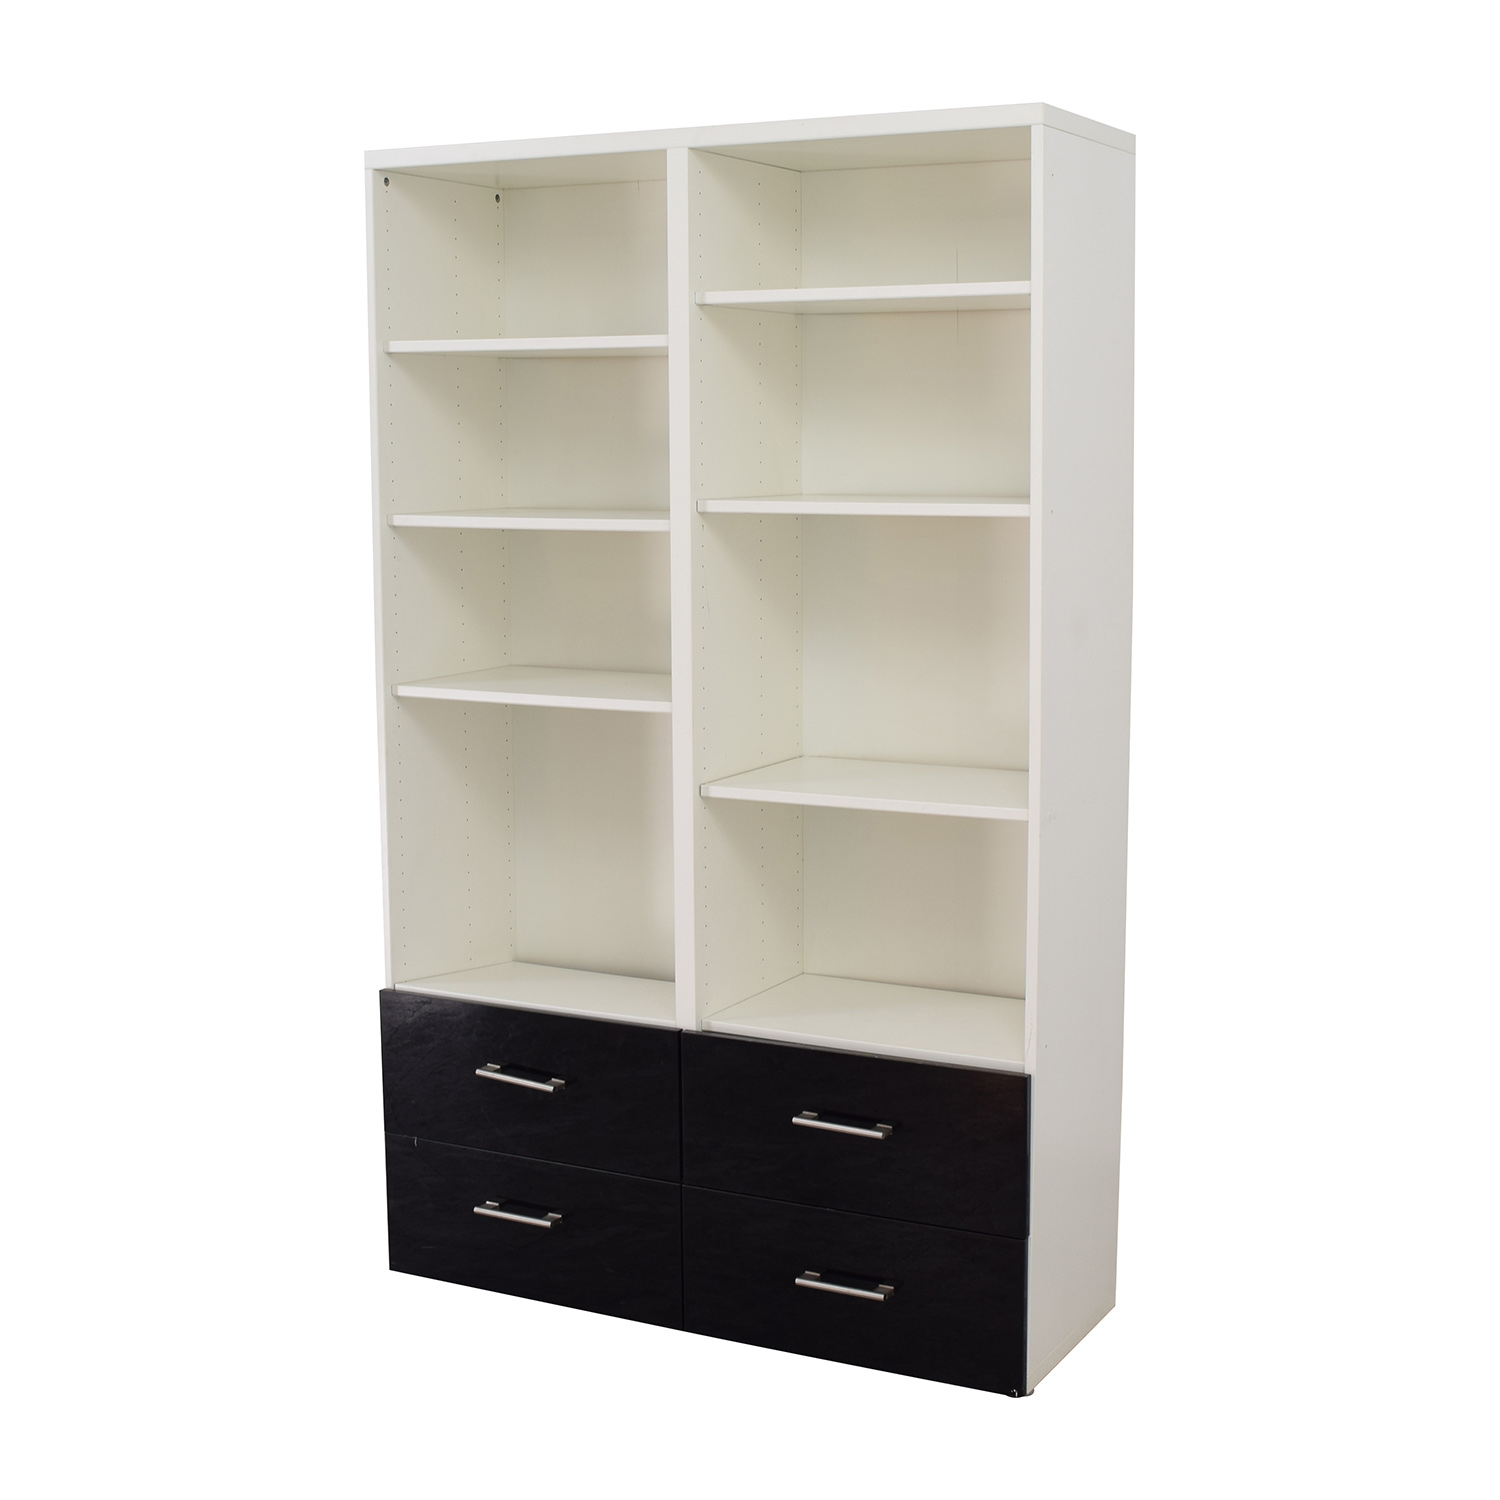 buy IKEA IKEA Double Shelf and Drawer Set online